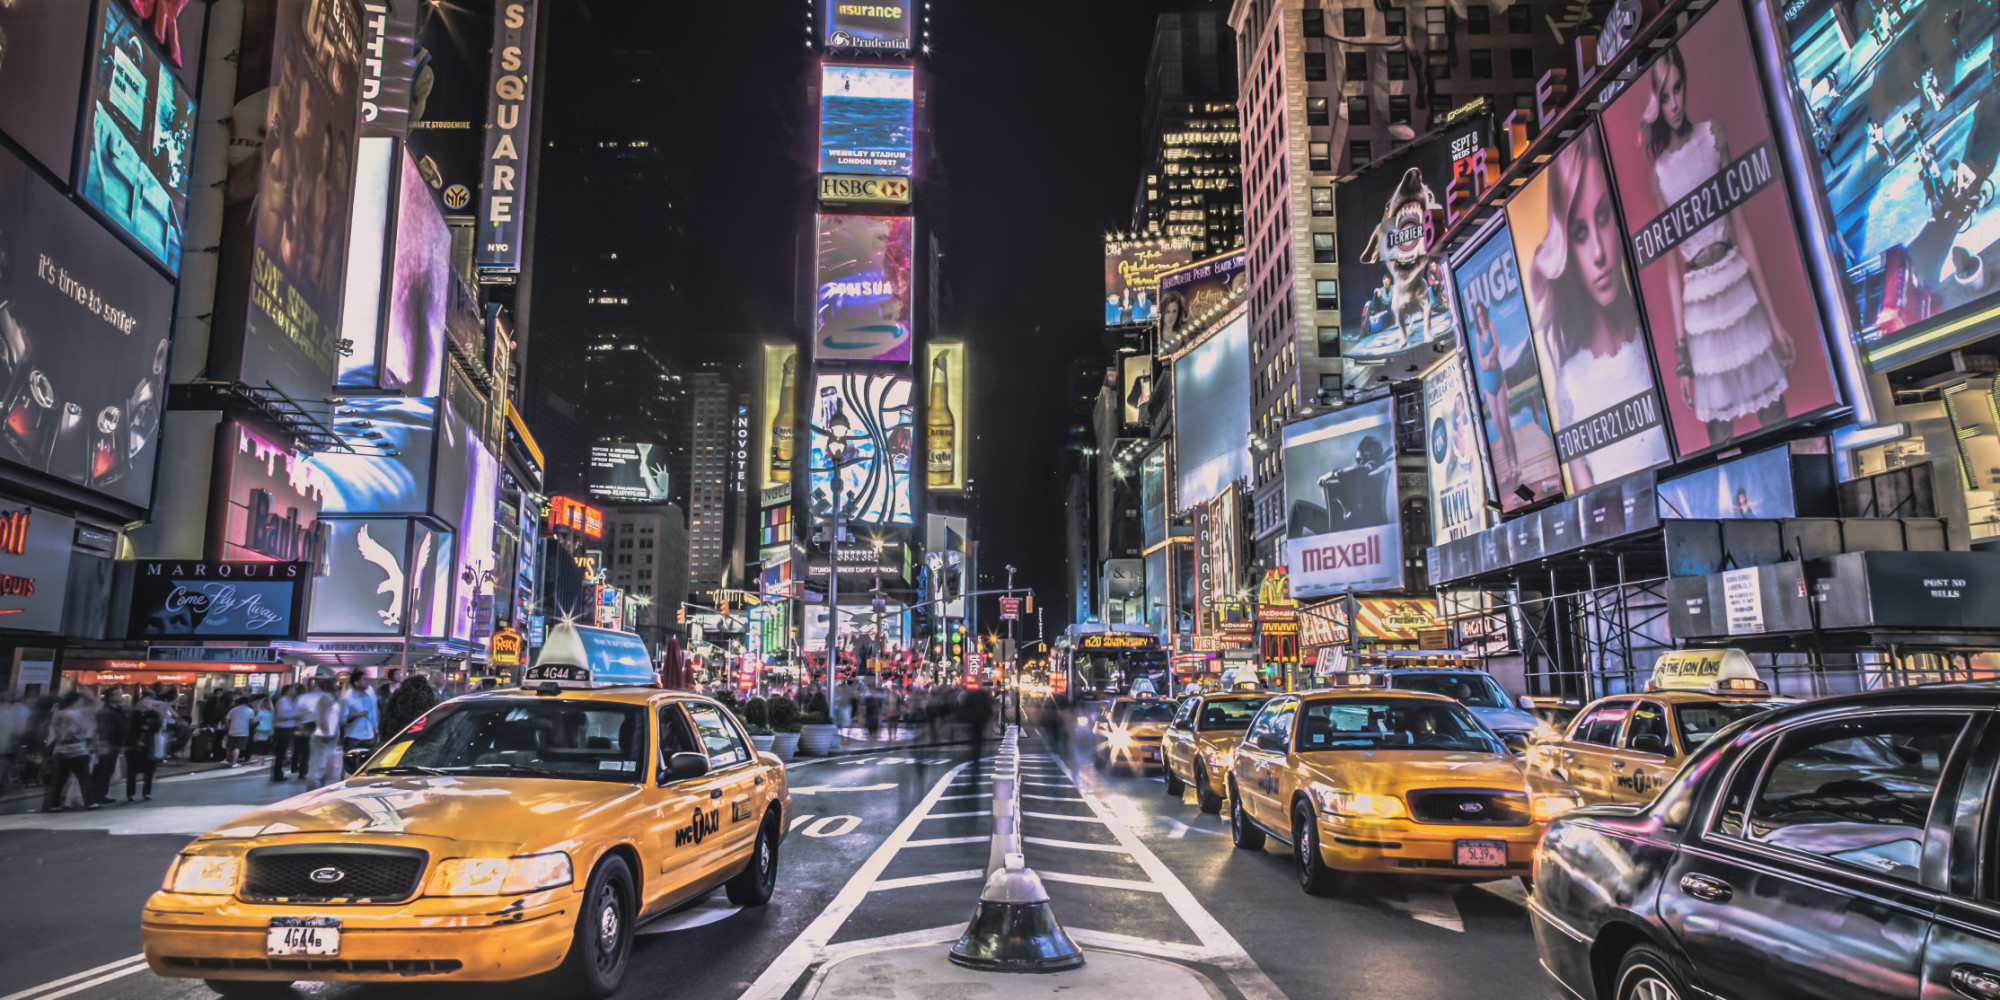 10 Things You Don't Know About NYC (Even if You Live There!)